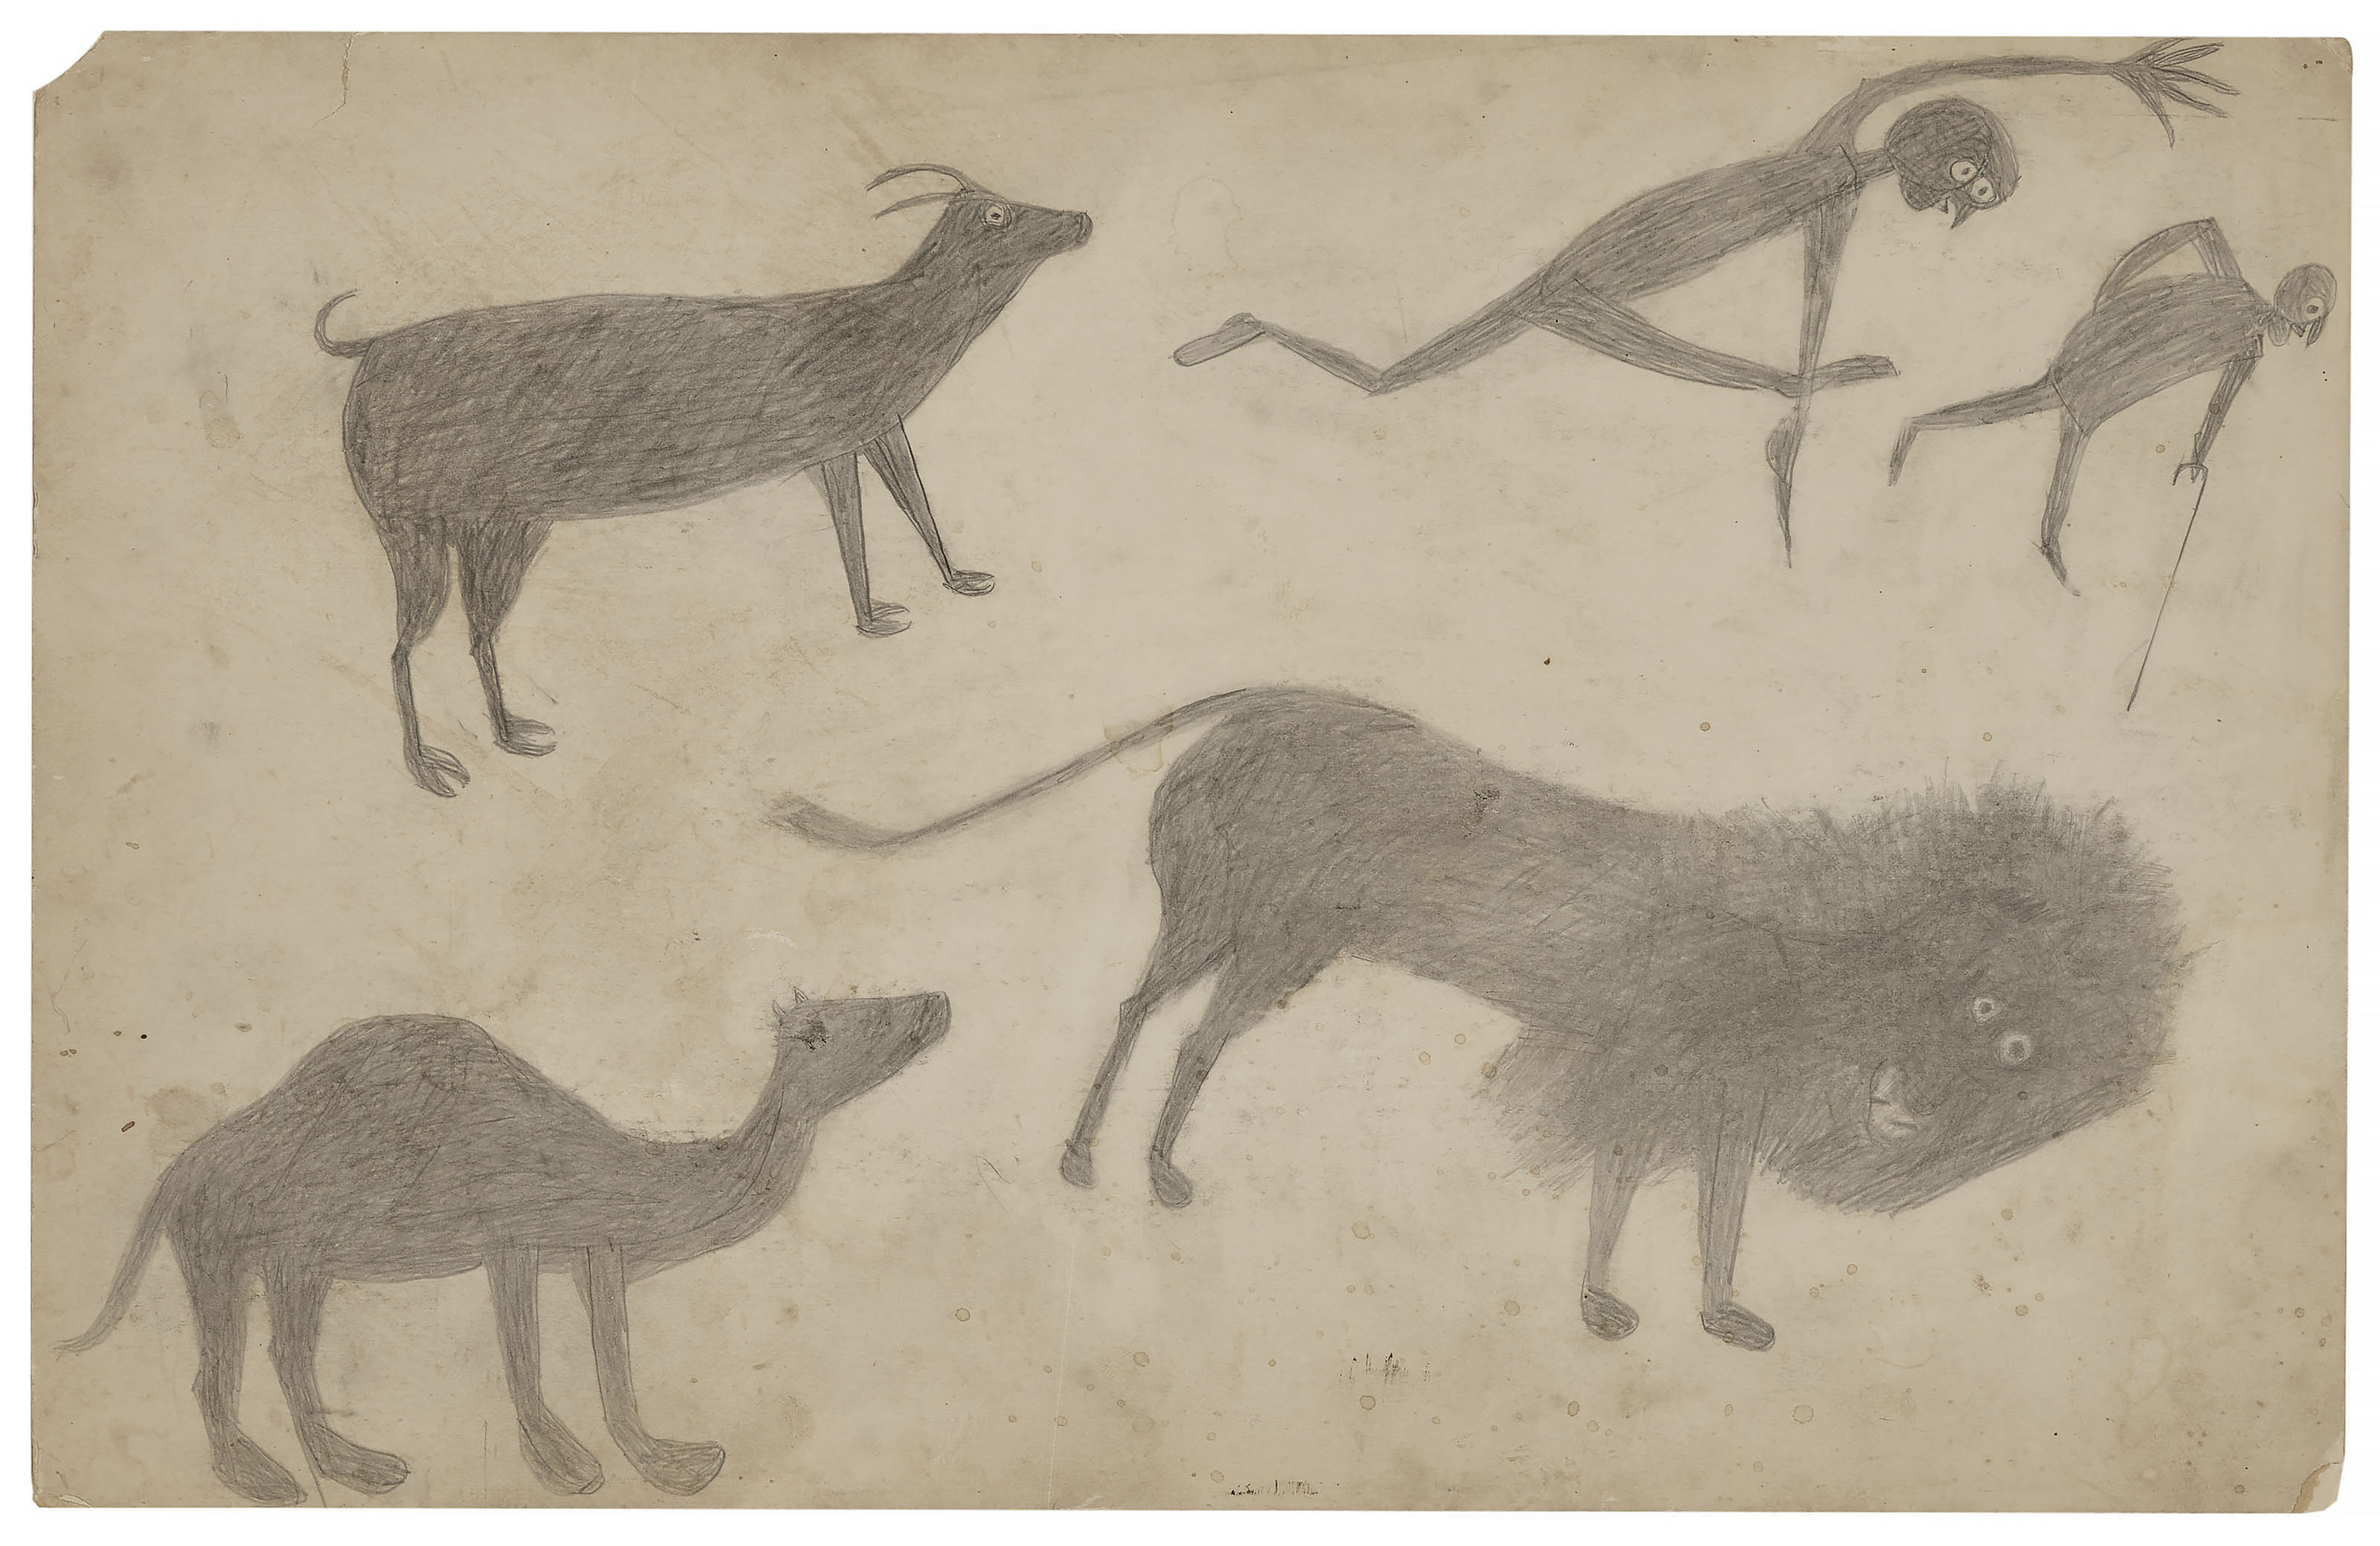 Goat, Camel, Lion and Figures, circa 1939